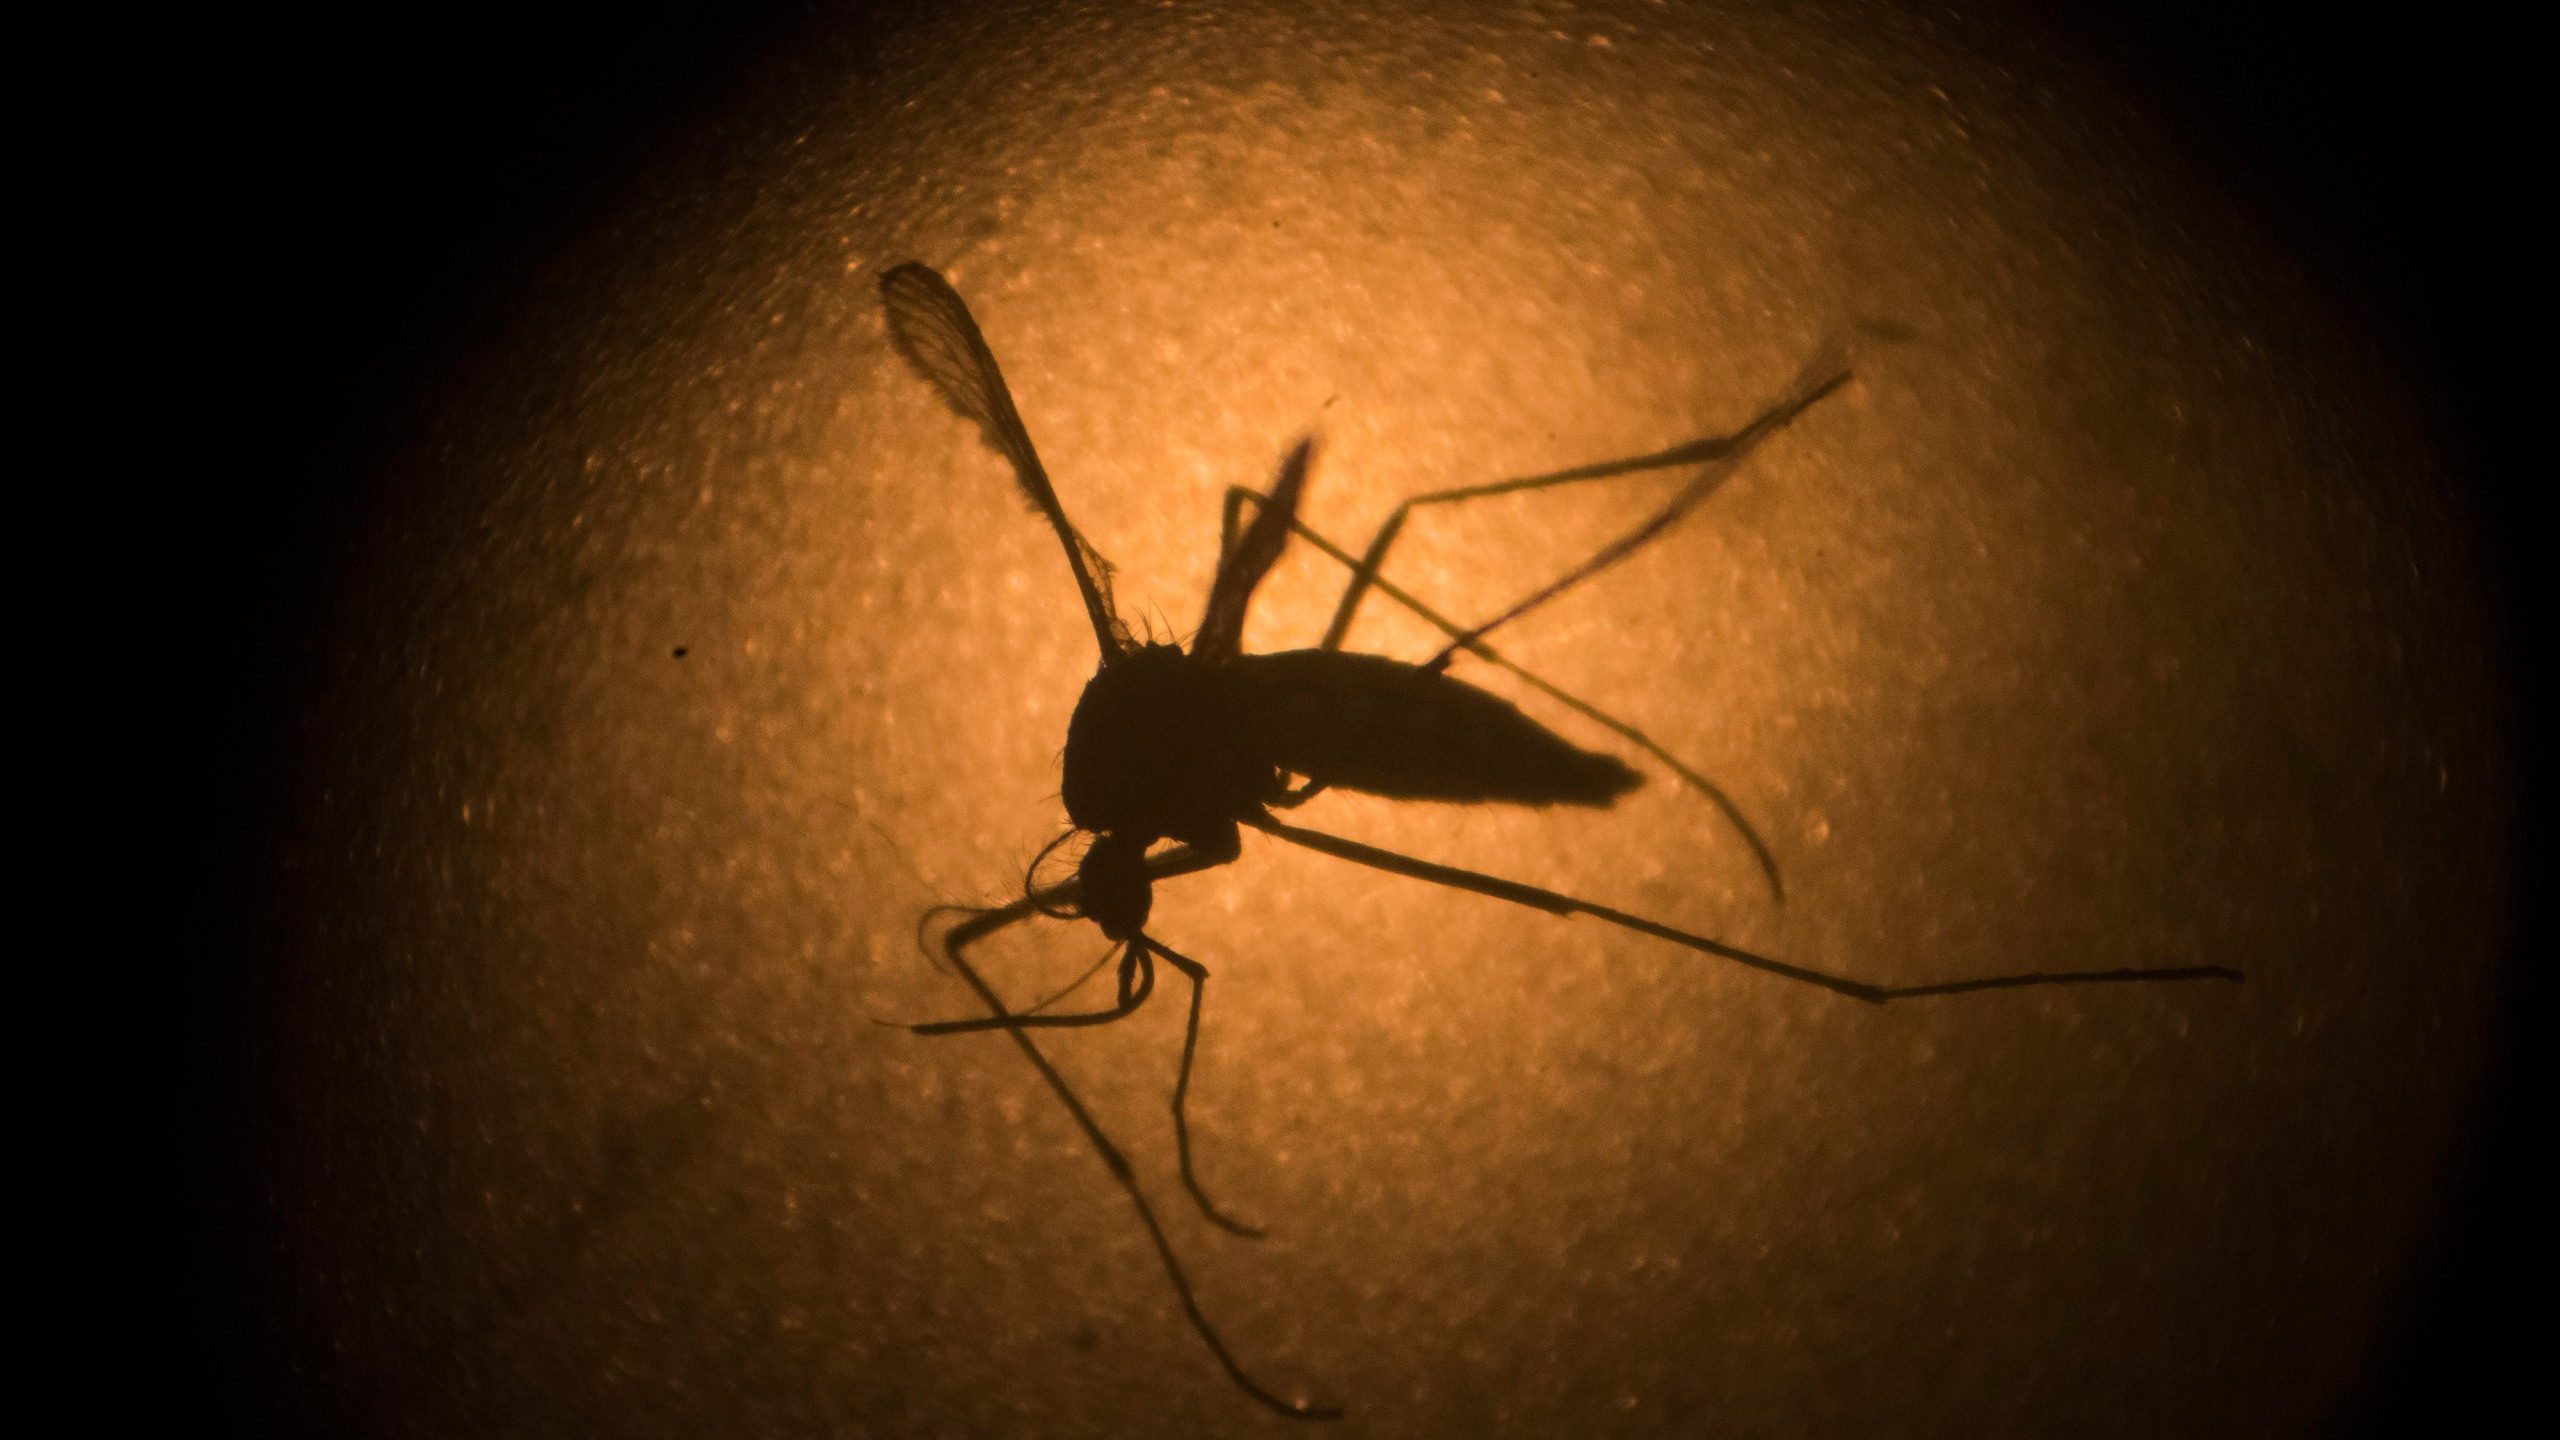 An Aedes aegypti mosquito is photographed through a microscope at the Fiocruz institute in Recife, Pernambuco state, Brazil, Wednesday, Jan. 27_238449